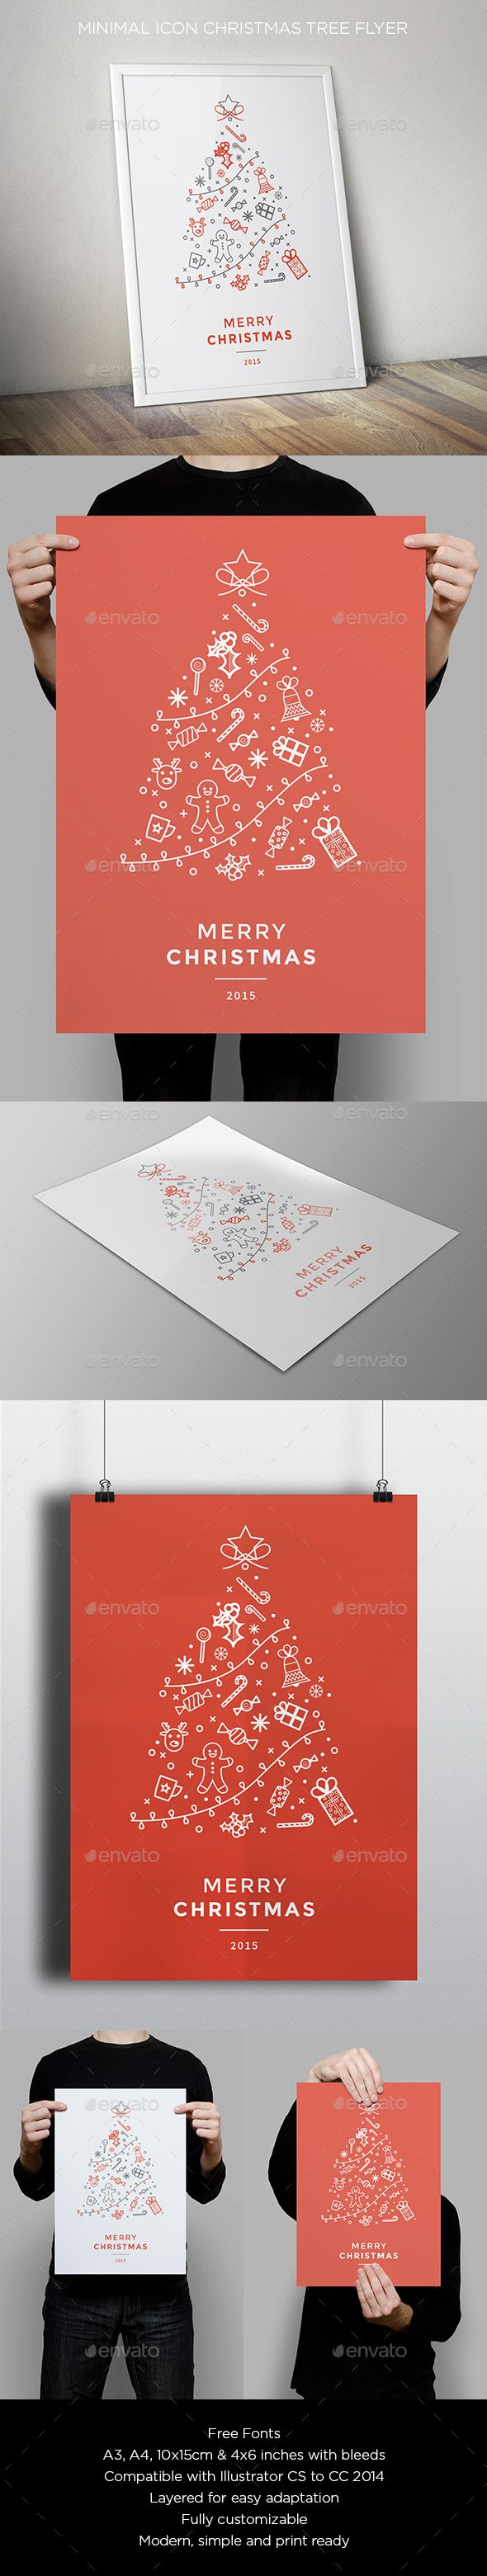 Minimal Icon Christmas Flyer Vector Template AI, EPS #design Download: http://graphicriver.net/item/minimal-icon-christmas-flyer/13652852?ref=ksioks